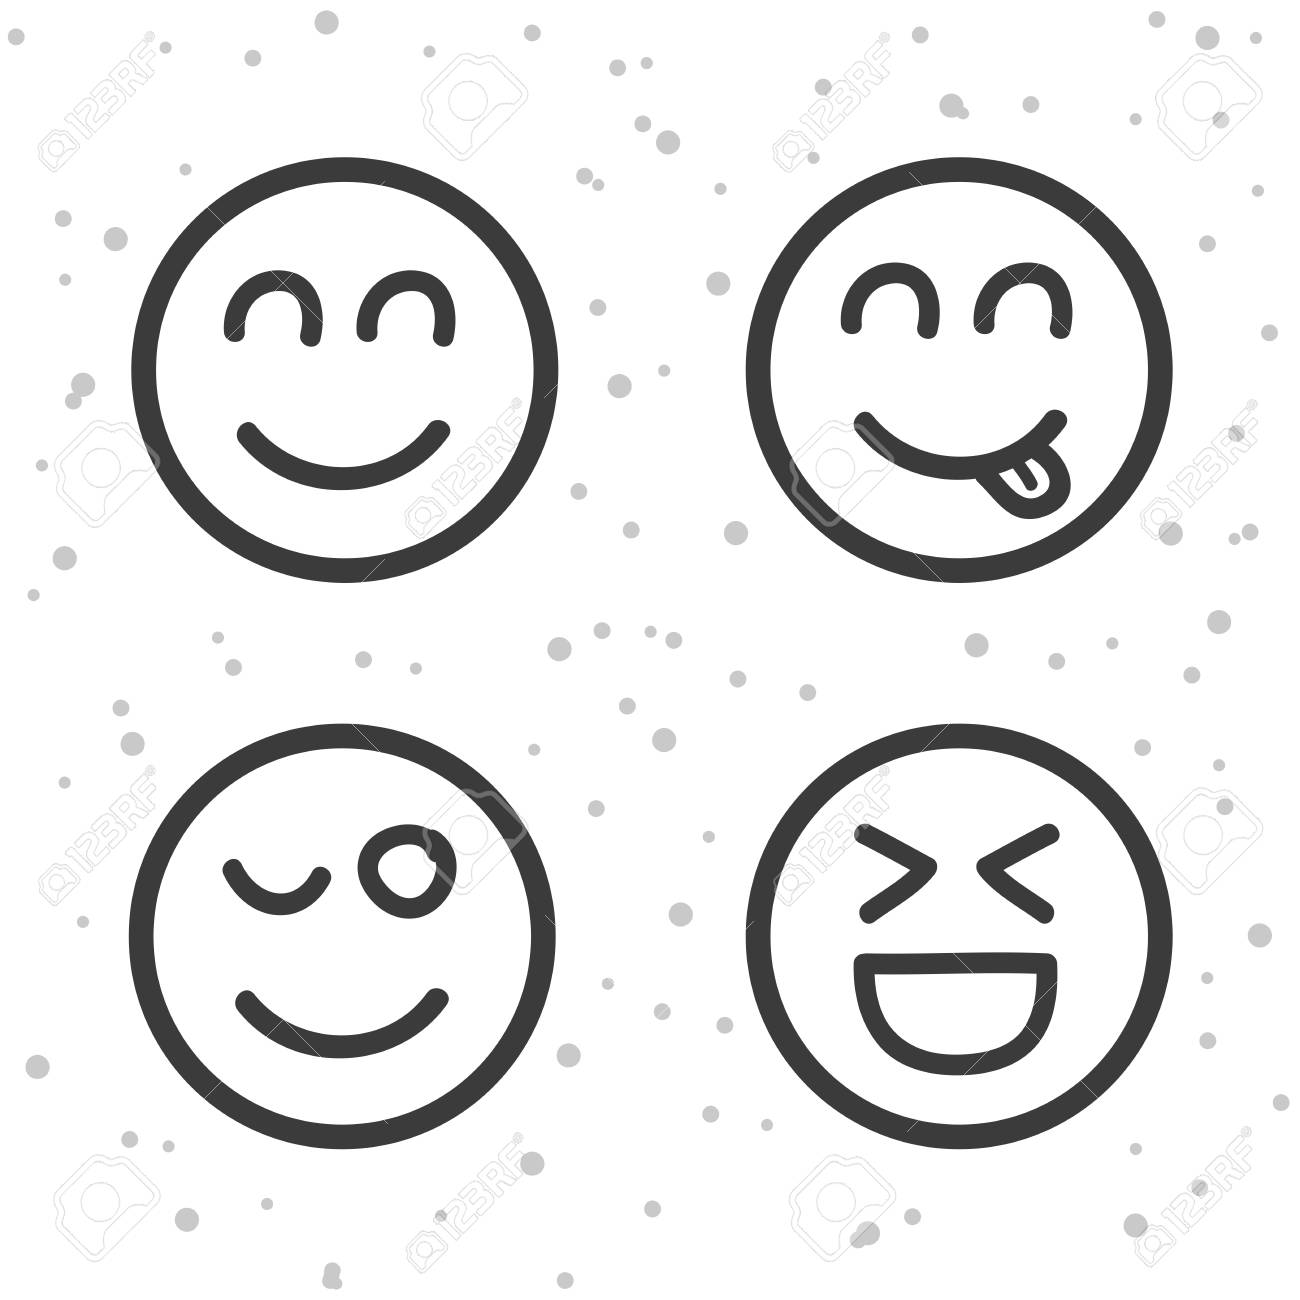 Happy Smiley Icons Laughing Emoticons Symbols Royalty Free